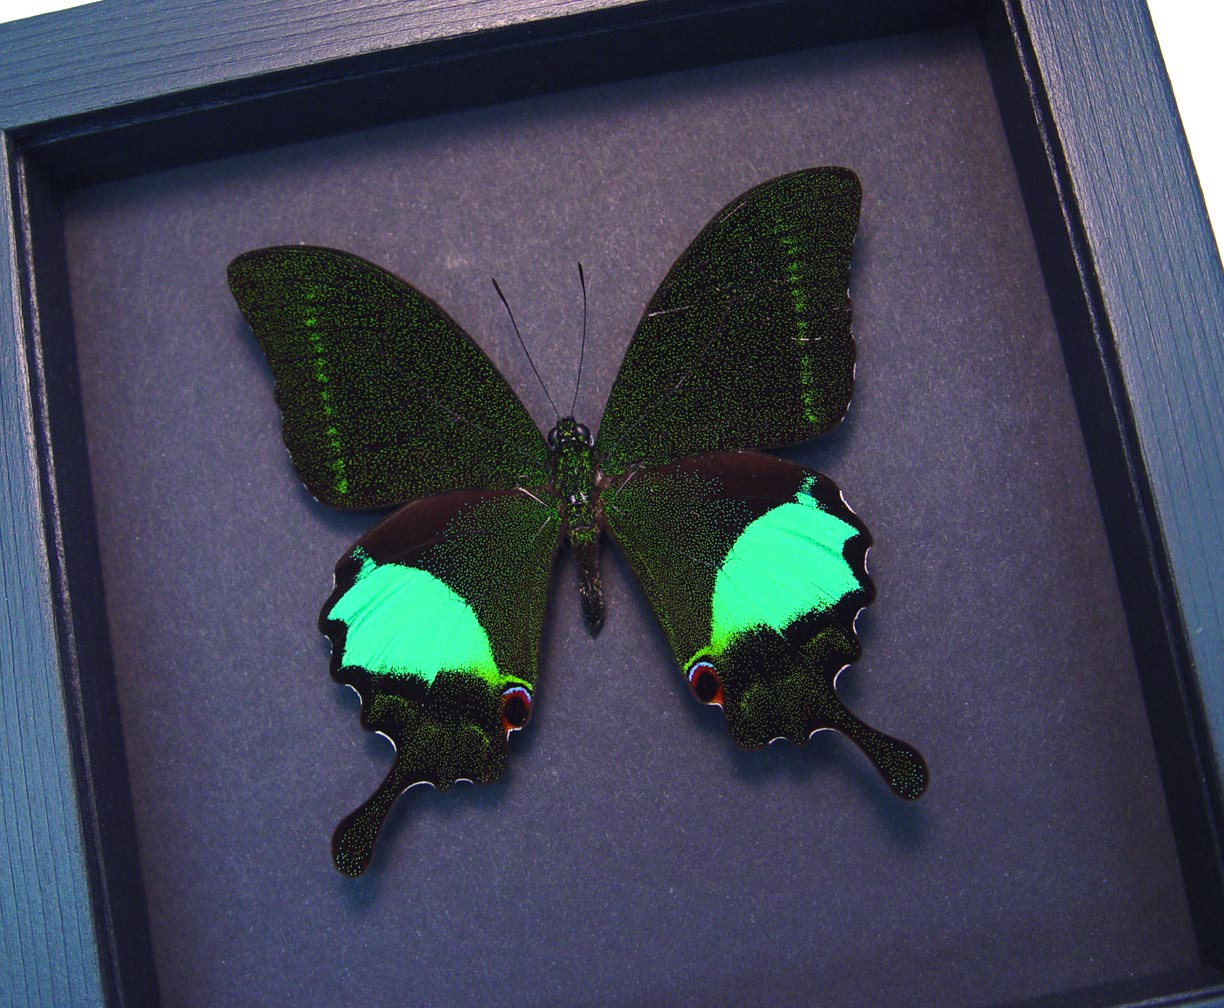 Papilio paris Peacock Swallowtail Green Butterfly Moonlight Display ooak